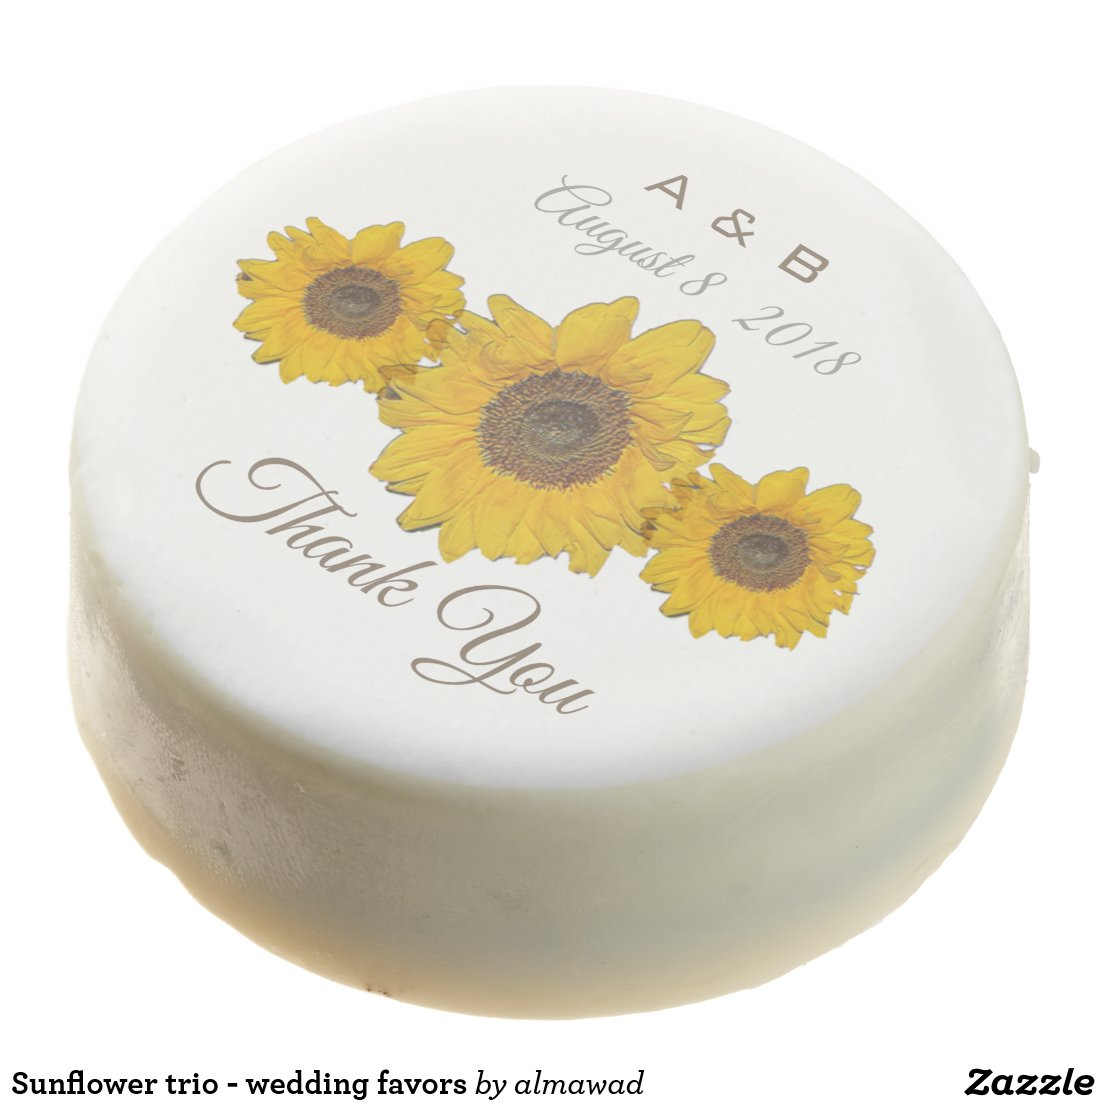 Sunflower trio - wedding favors